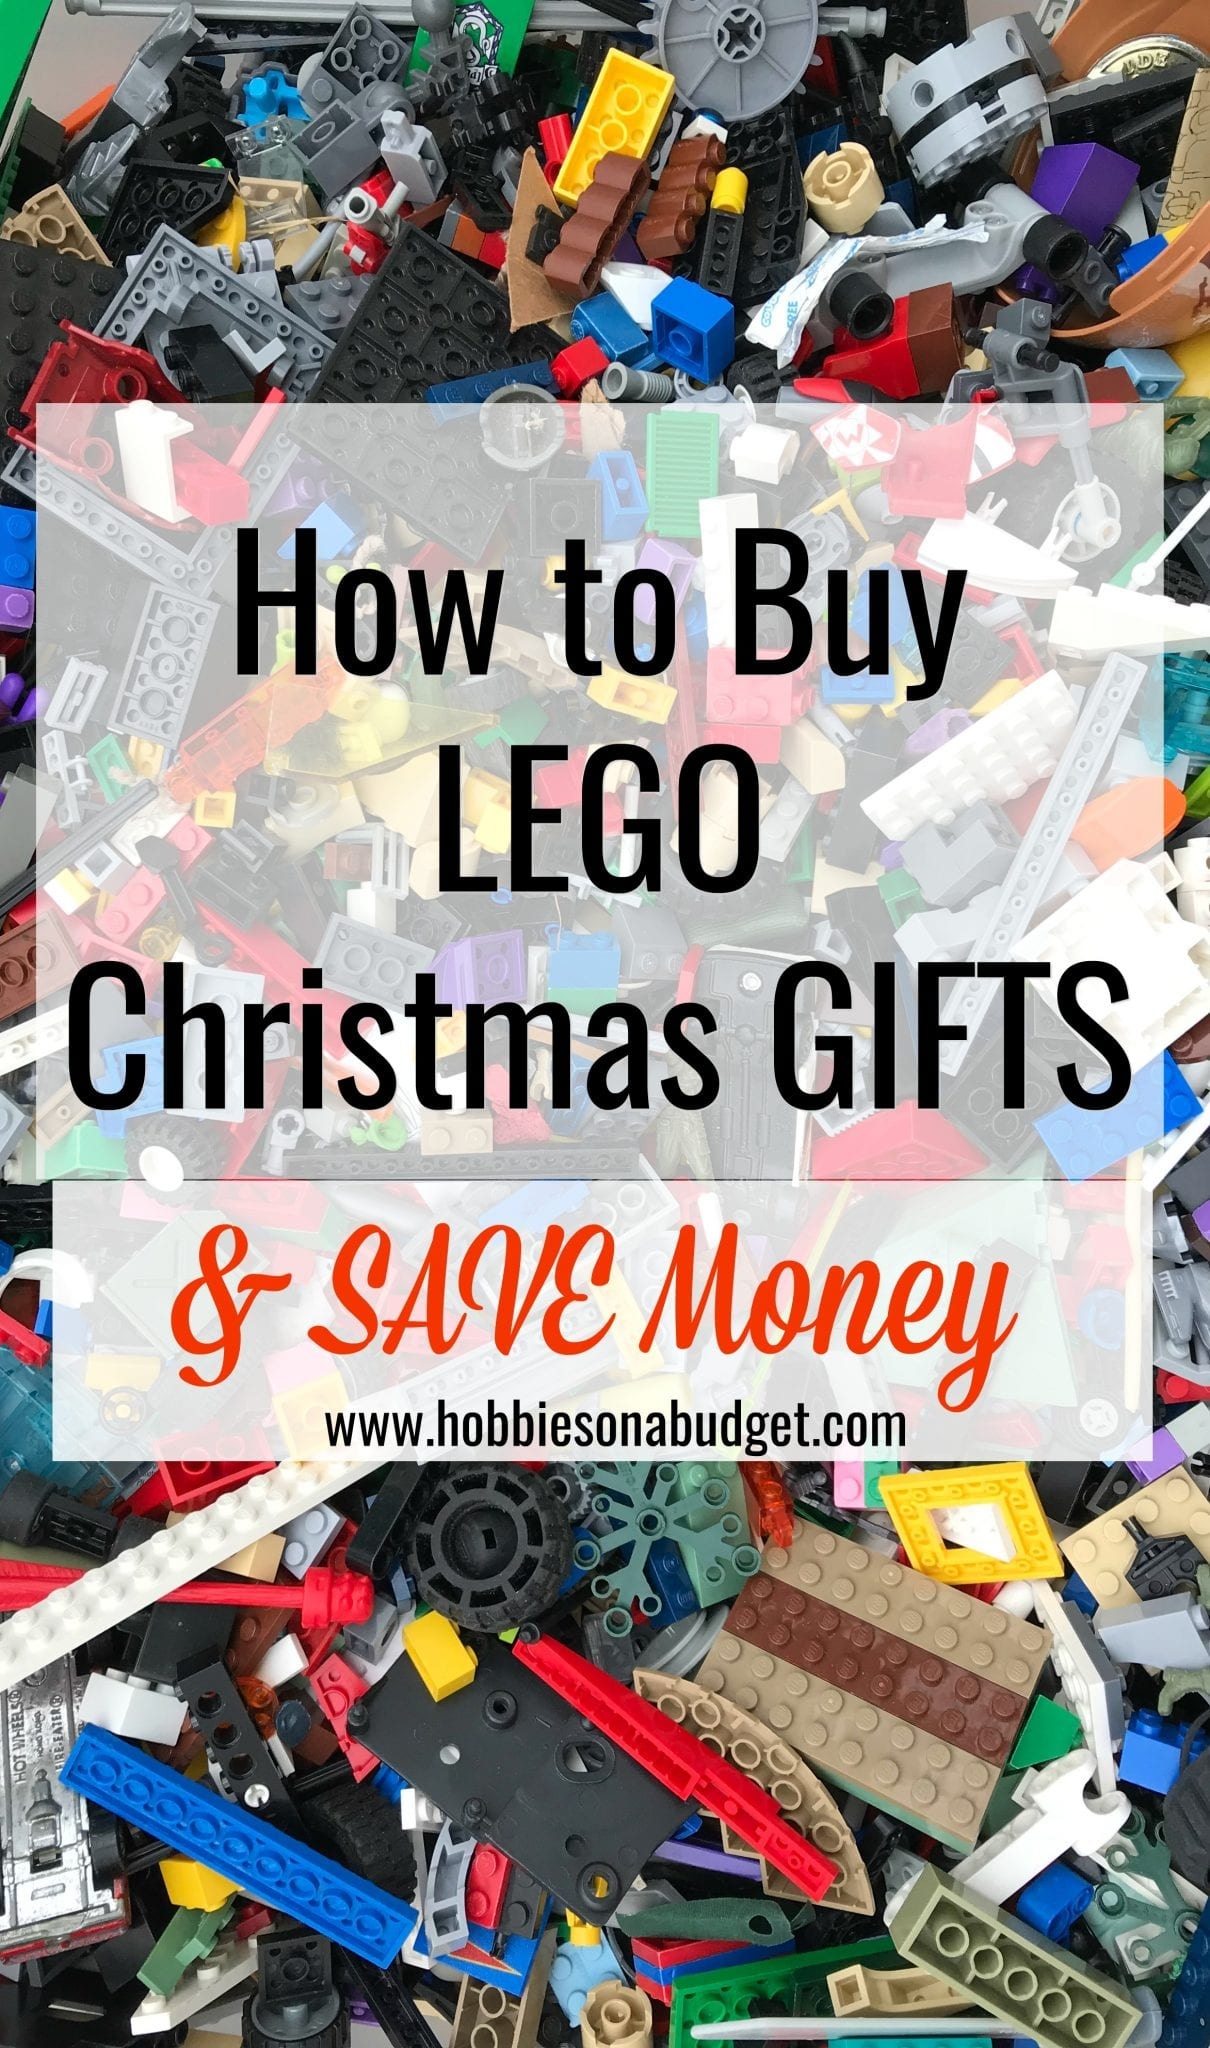 How to Buy LEGO Christmas Gifts & Save Money